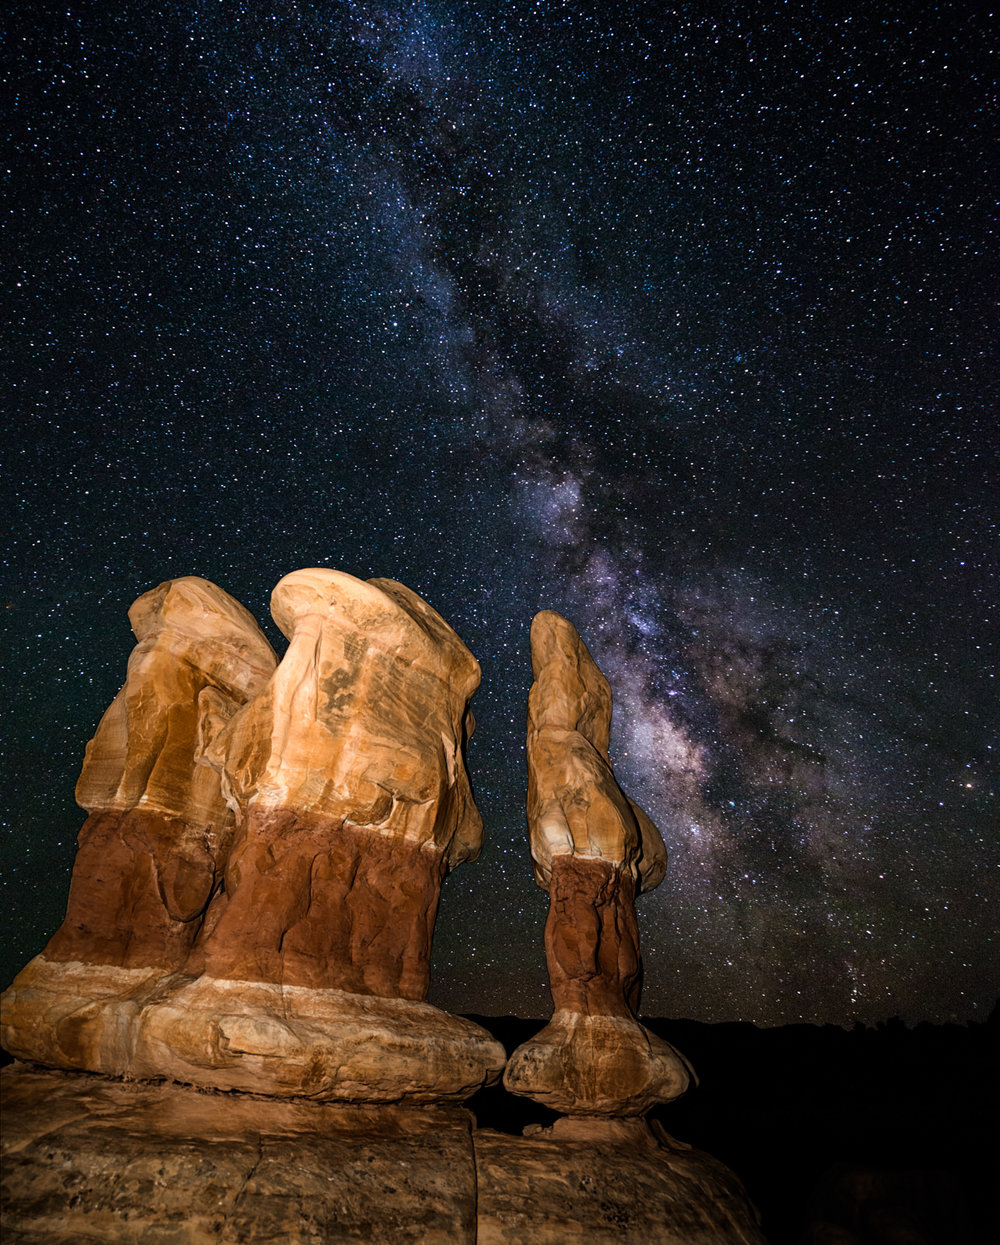 The Sentinels of Devil's Garden Face The Milky Way